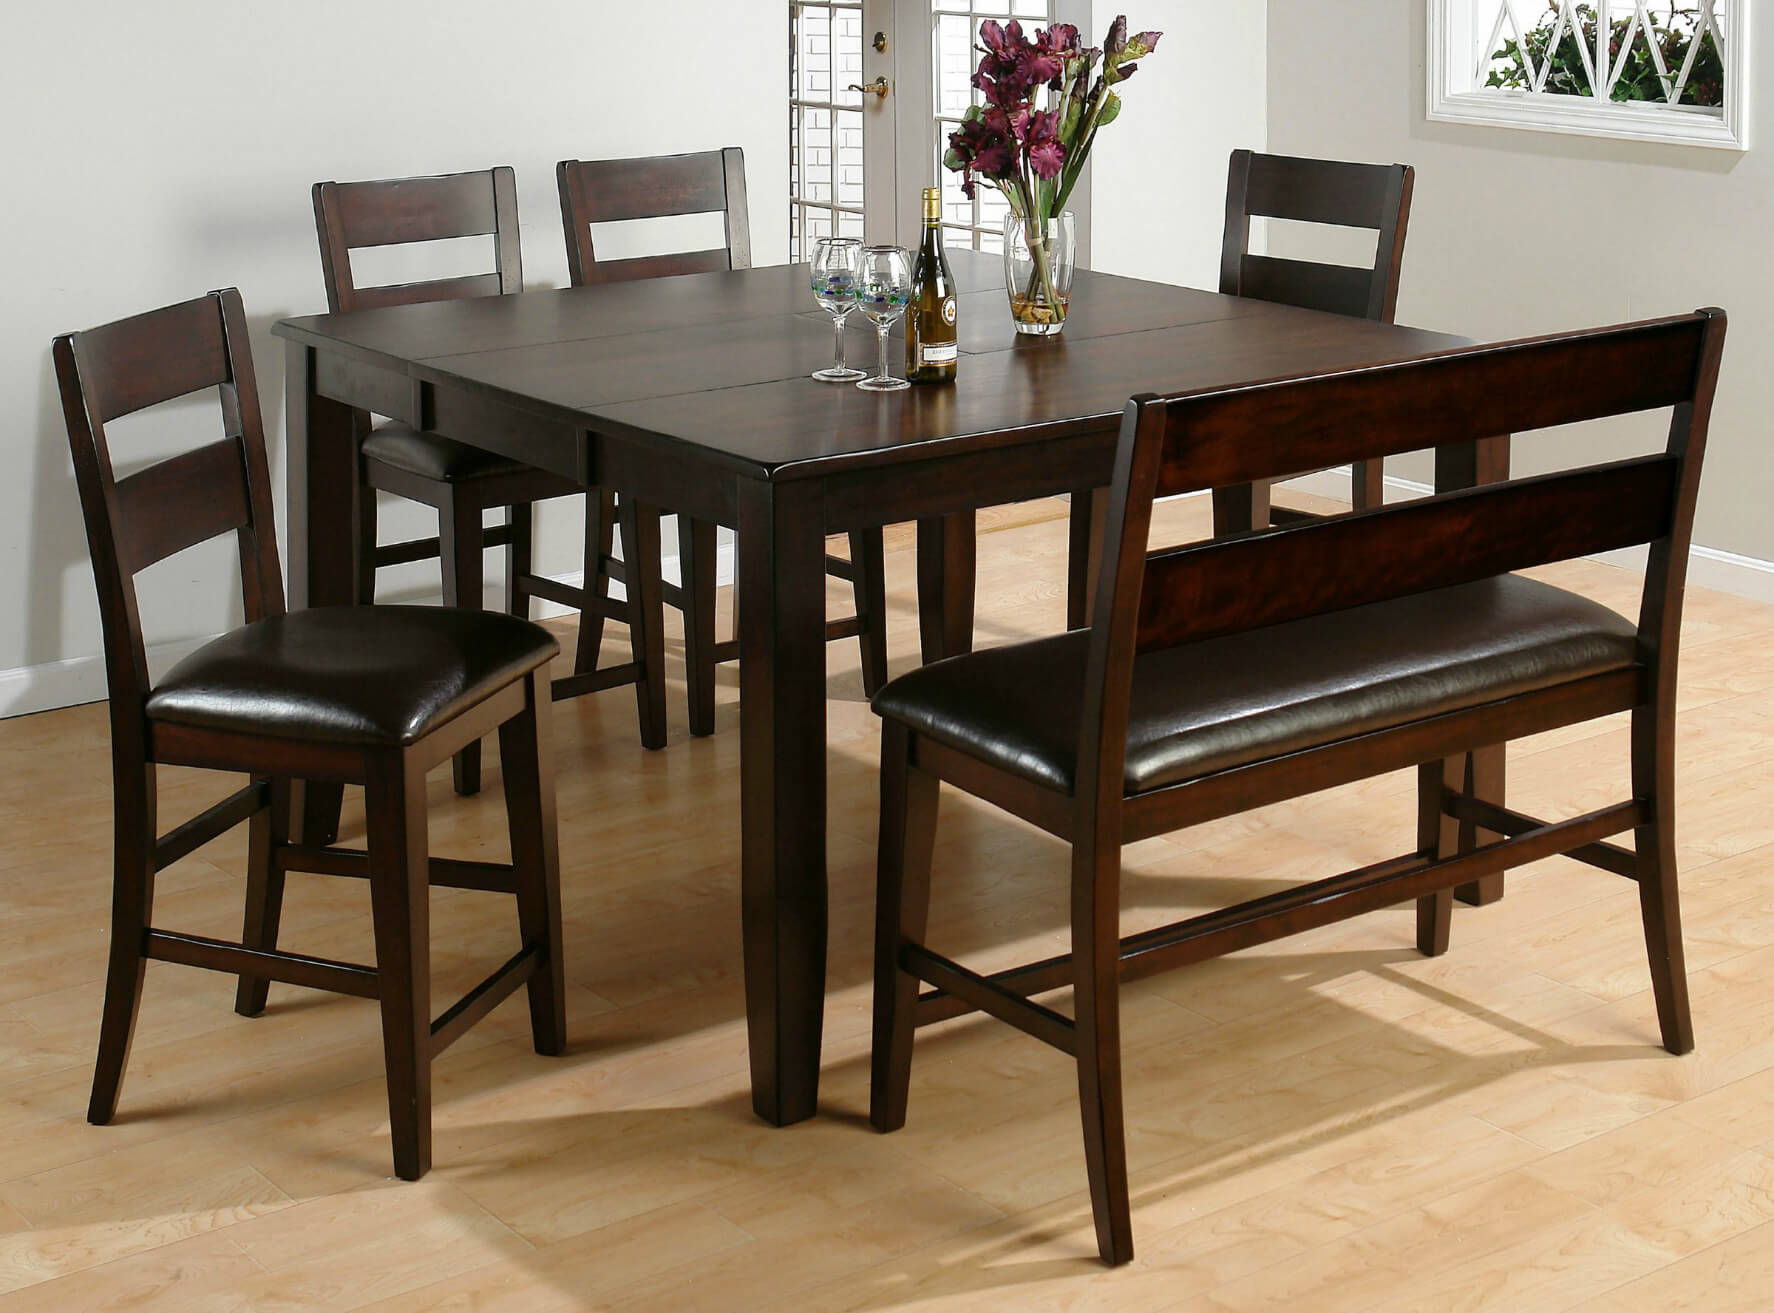 26 big small dining room sets with bench seating - Bench kitchen set ...